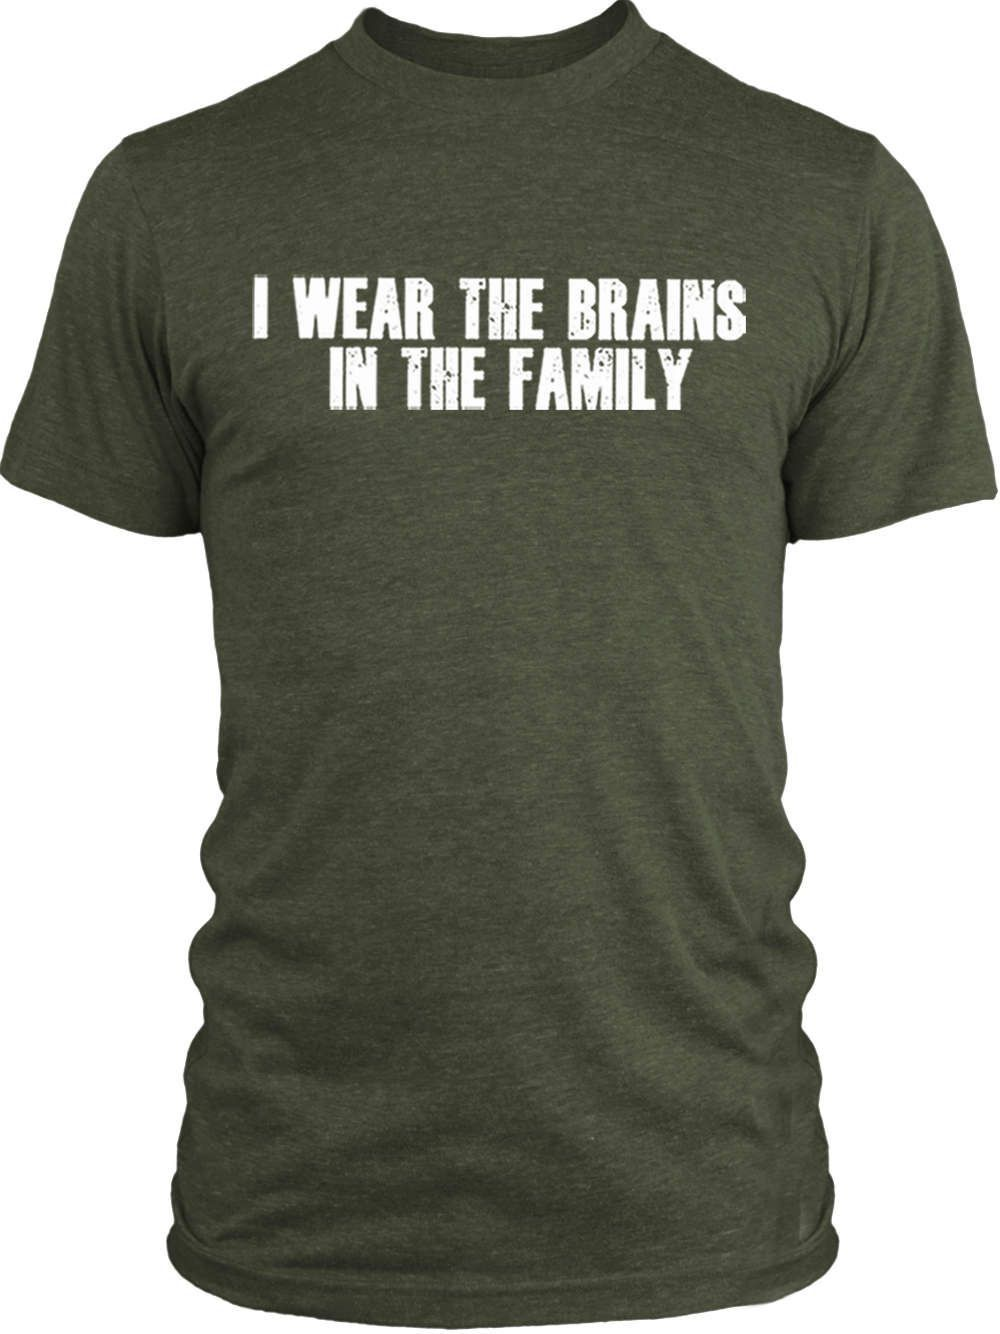 Big Texas I Wear the Brains in the Family (White) Vintage Tri-Blend T-Shirt